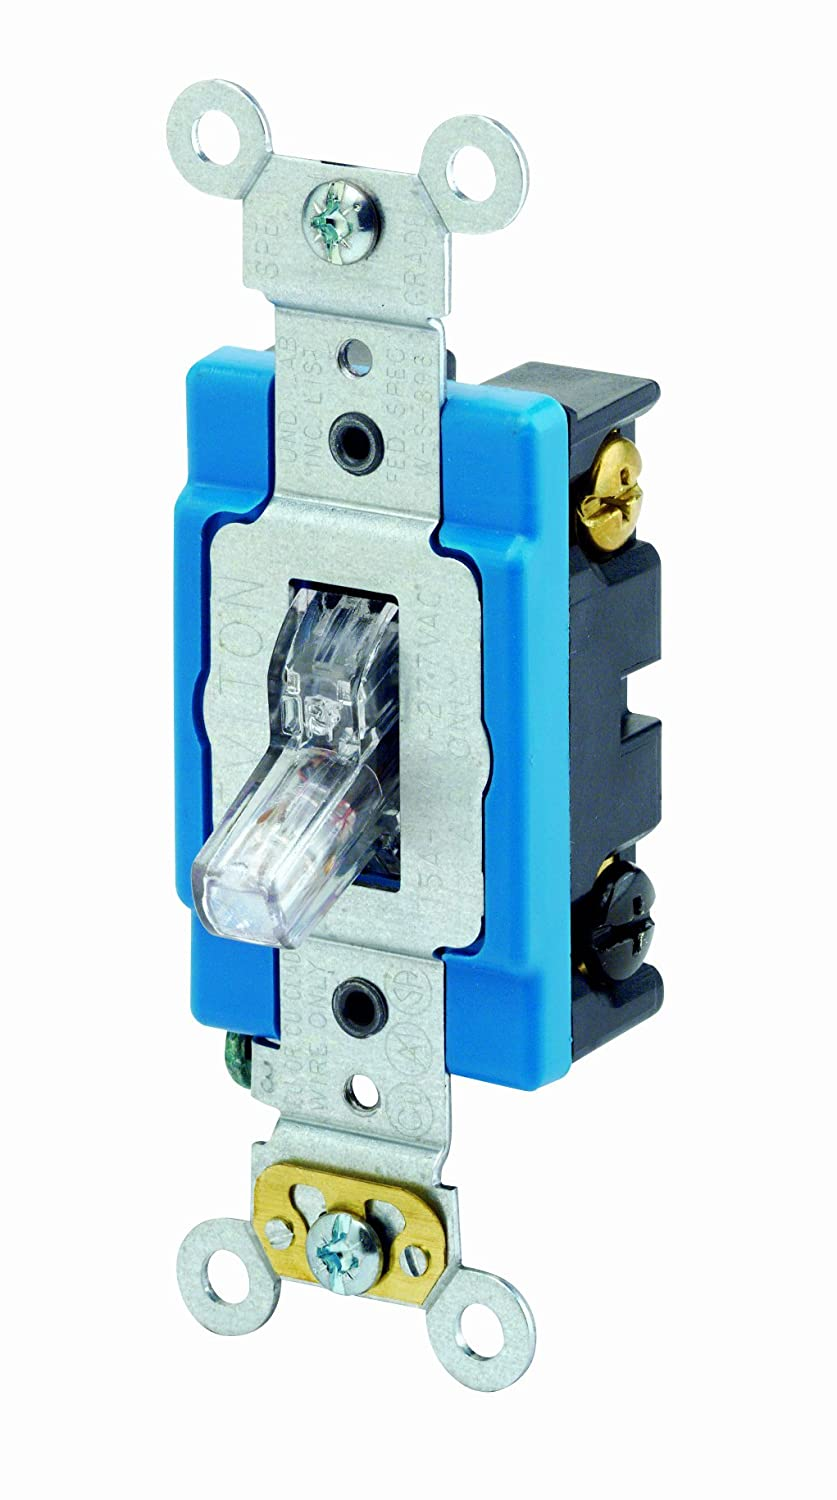 Leviton 1201 plc 15 amp 120 volt toggle pilot light illuminated leviton 1201 plc 15 amp 120 volt toggle pilot light illuminated on req neutral single pole ac quiet switch industrial grade self grounding swarovskicordoba Choice Image